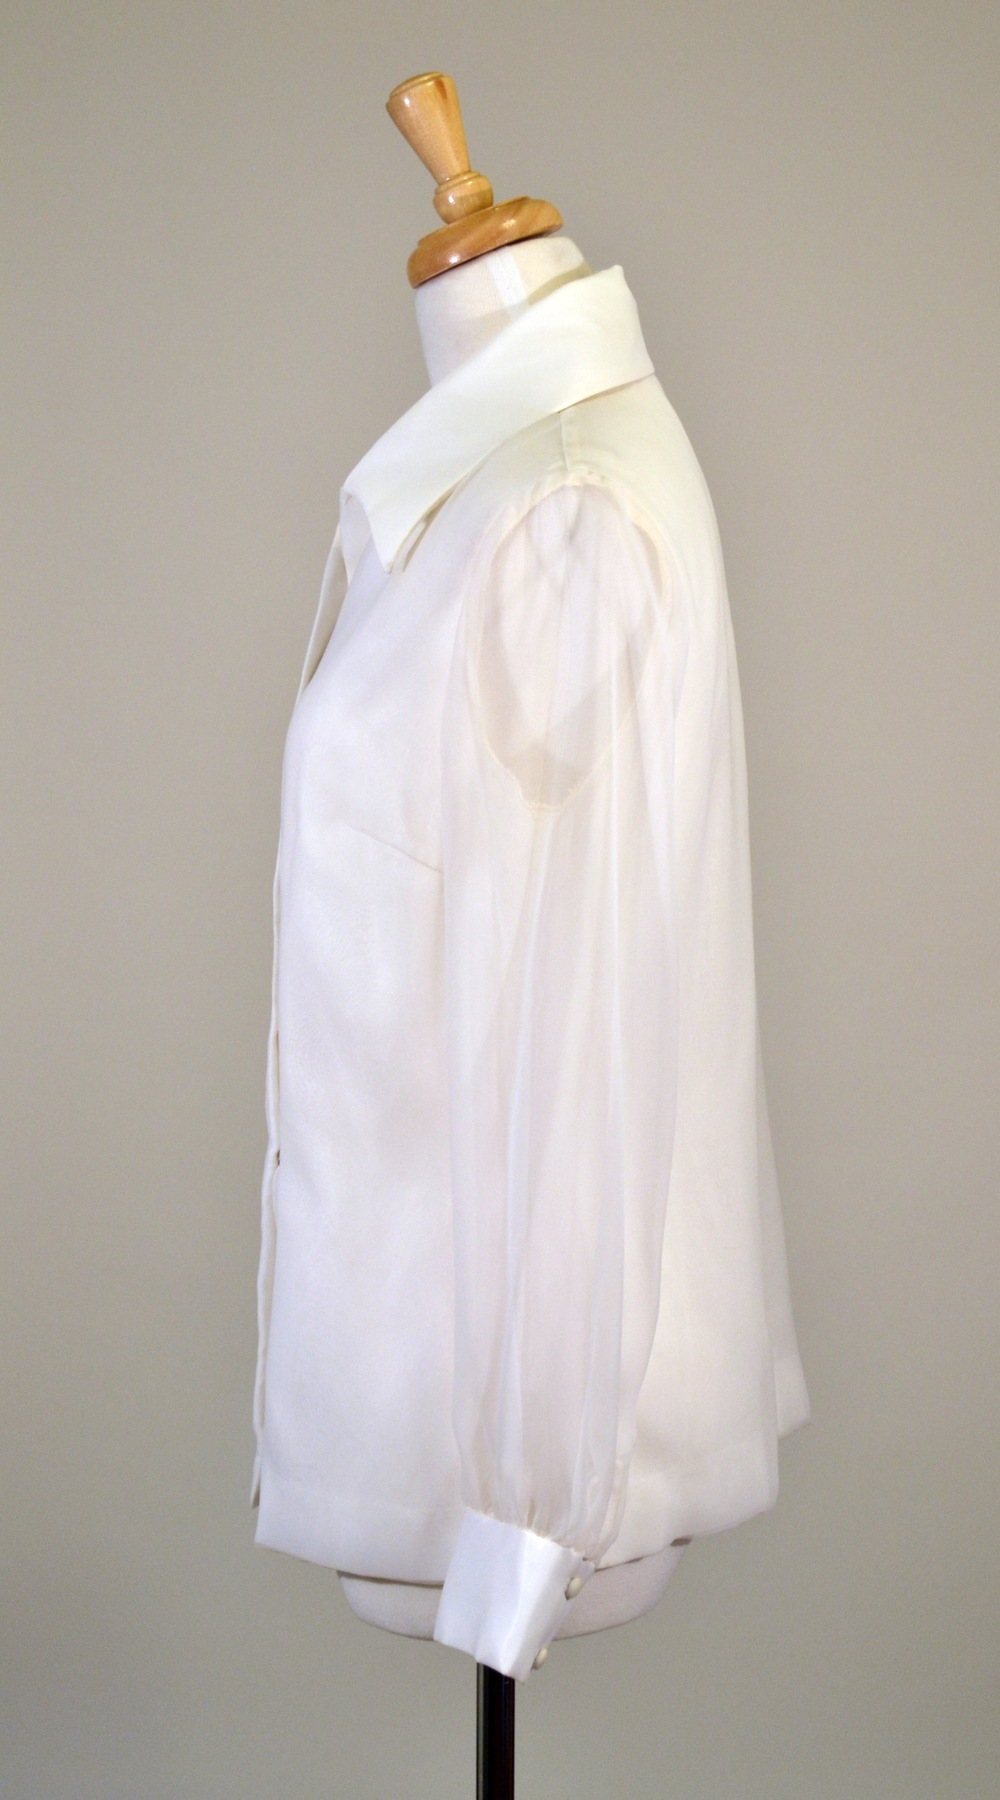 The Tracy Lord Blouse